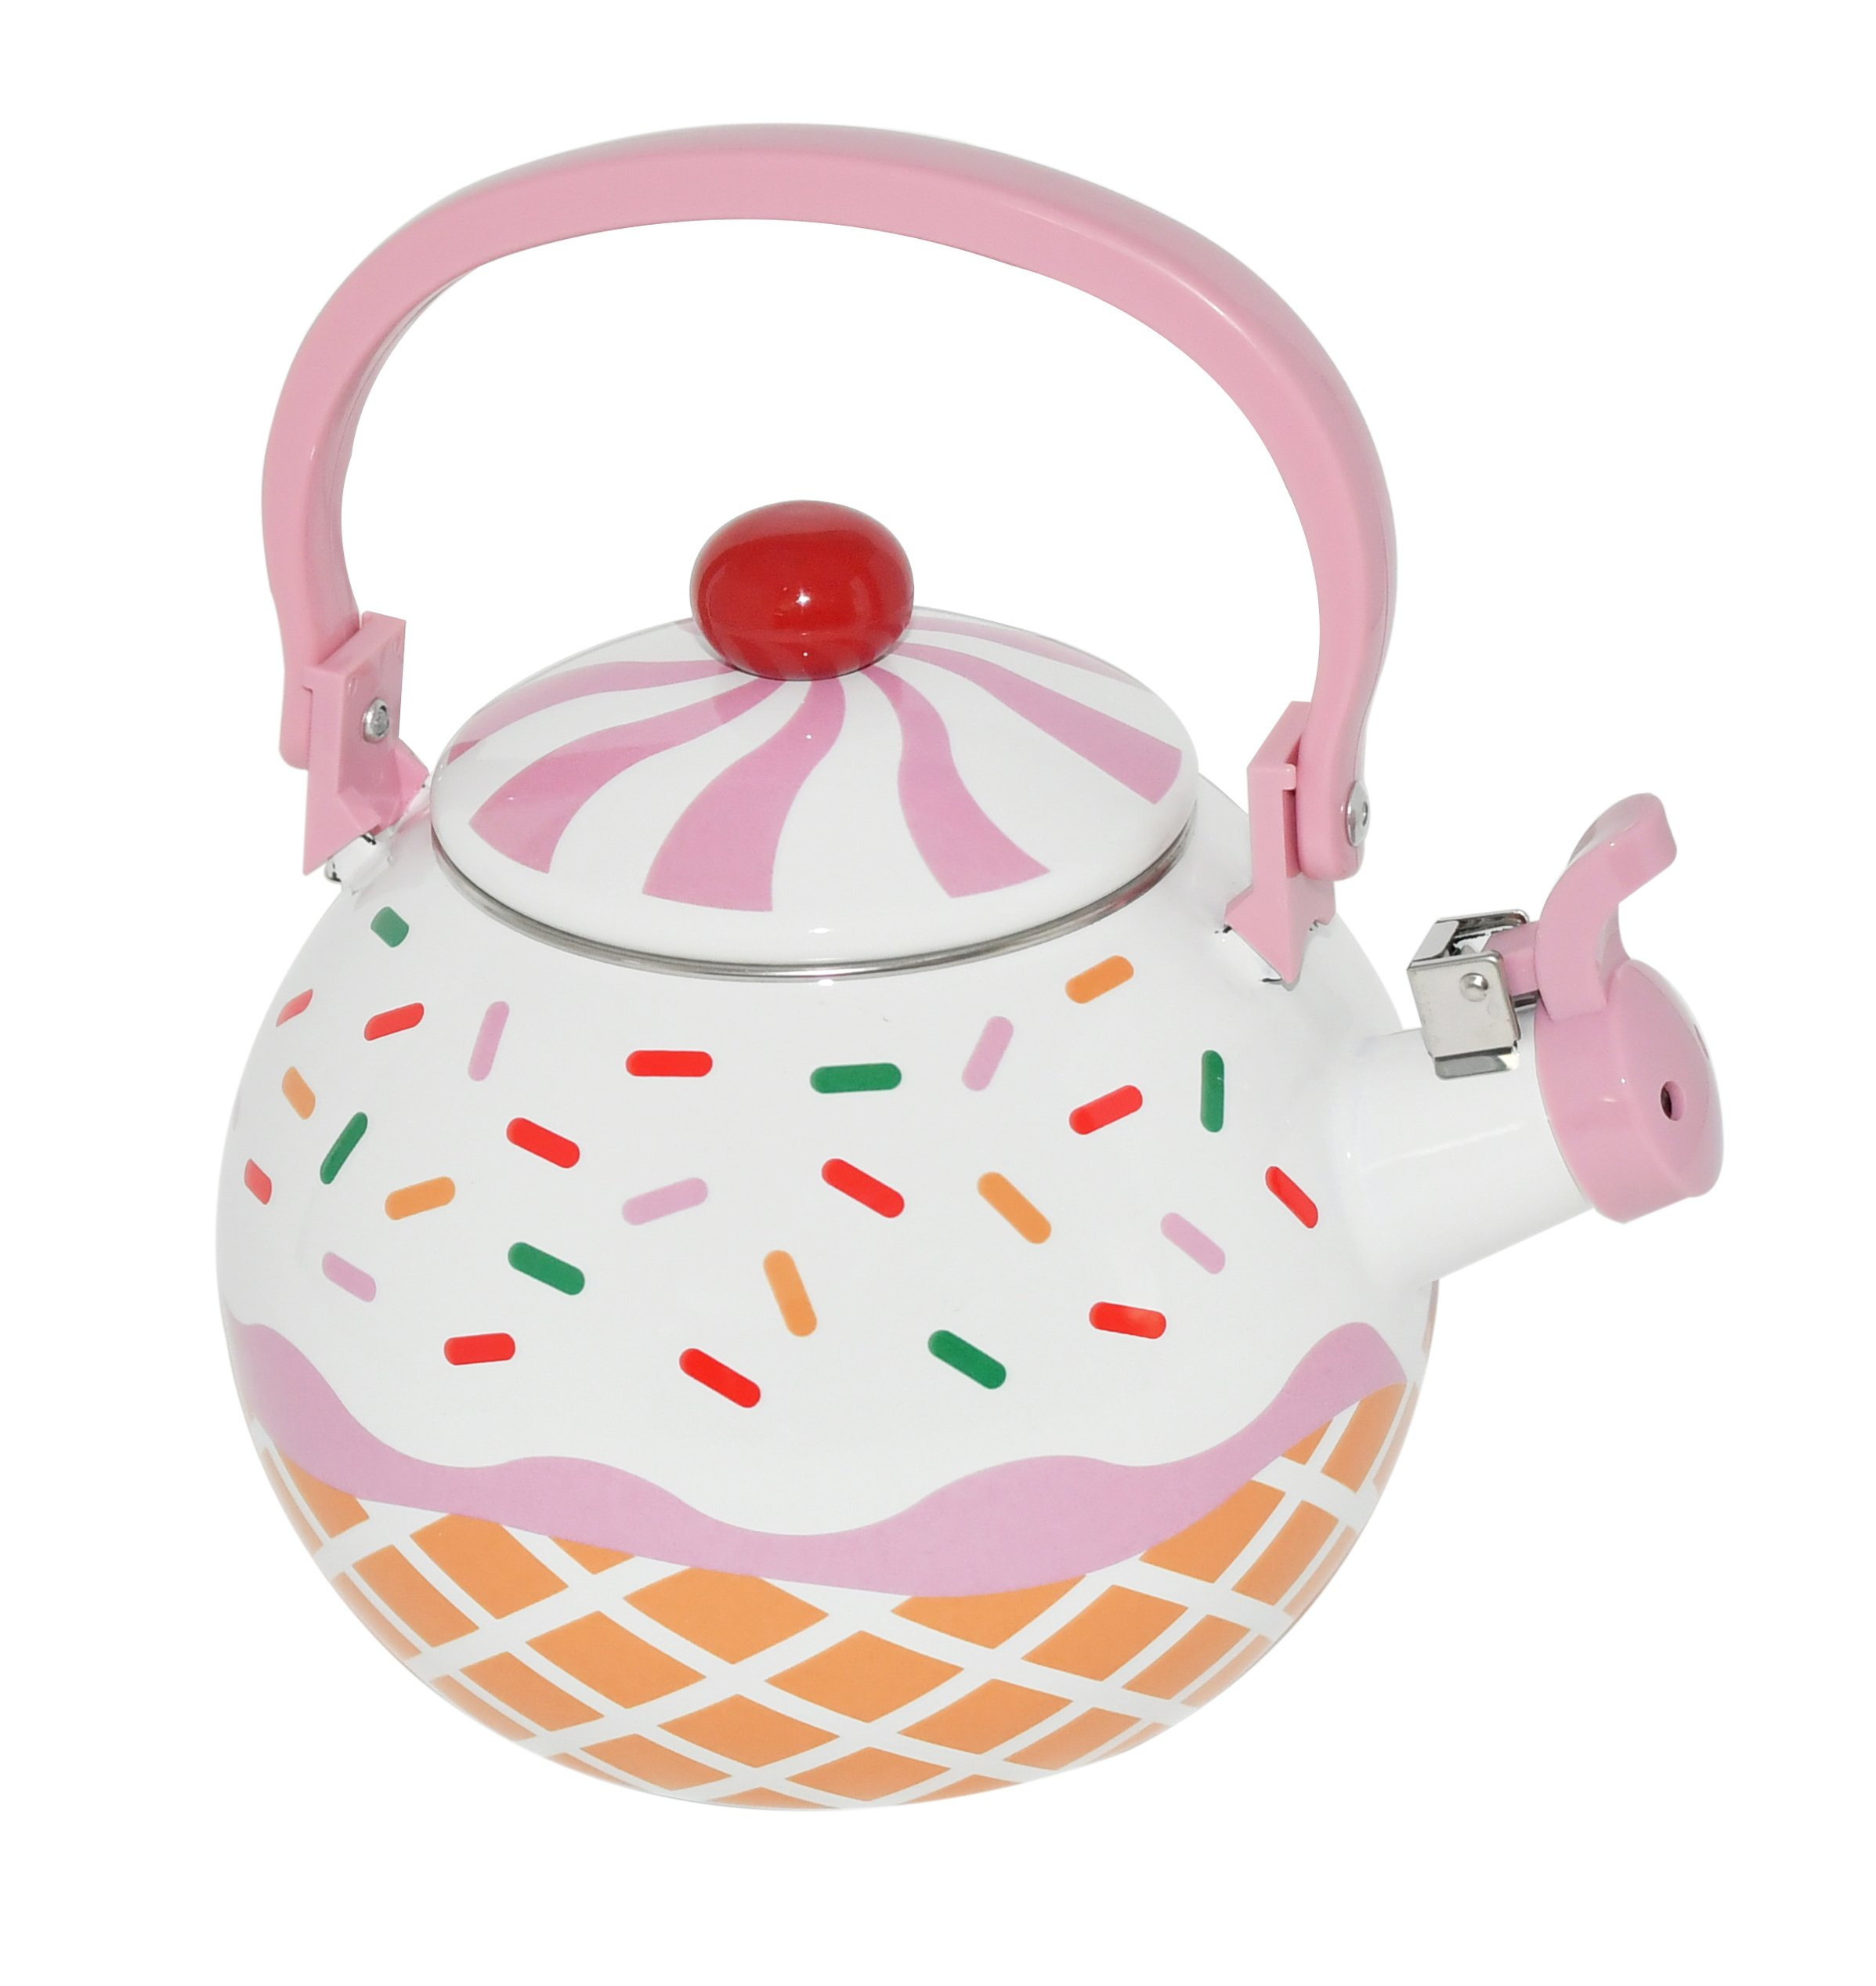 Home-X – Strawberry Cupcake Tea Kettle, 1.7 Quart Whistling Tea Kettle for Gas Top or Electric Stoves, The Perfect Addition to Any Kitchen